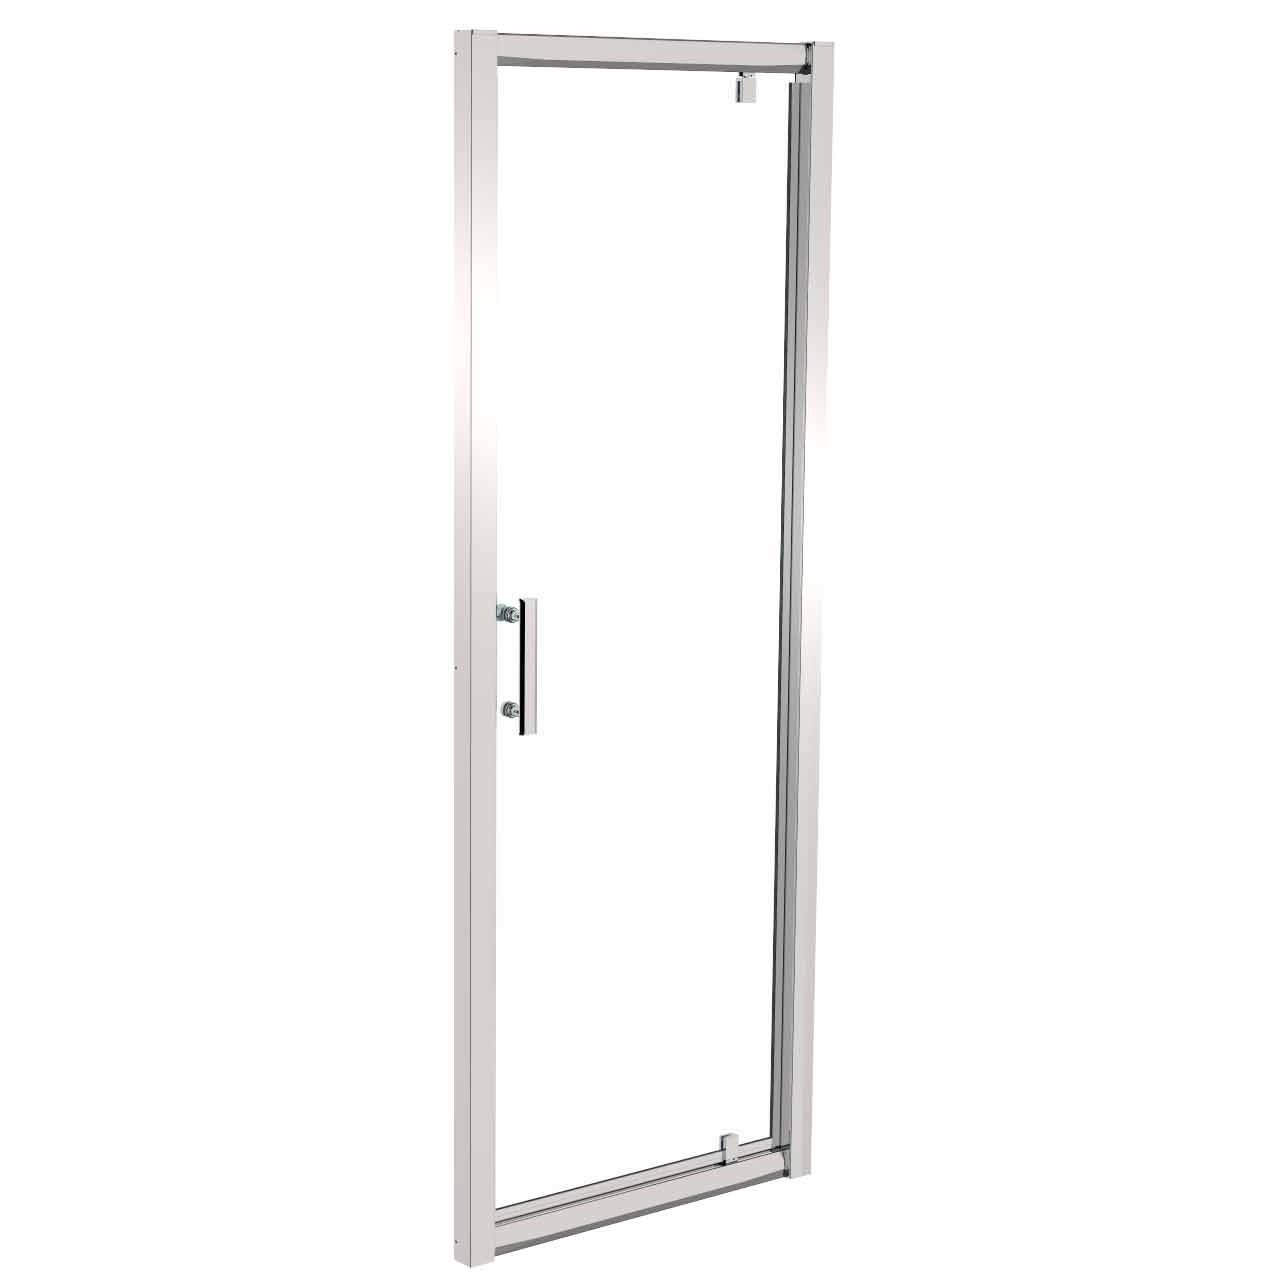 Series 6 Pivot Shower Door 700